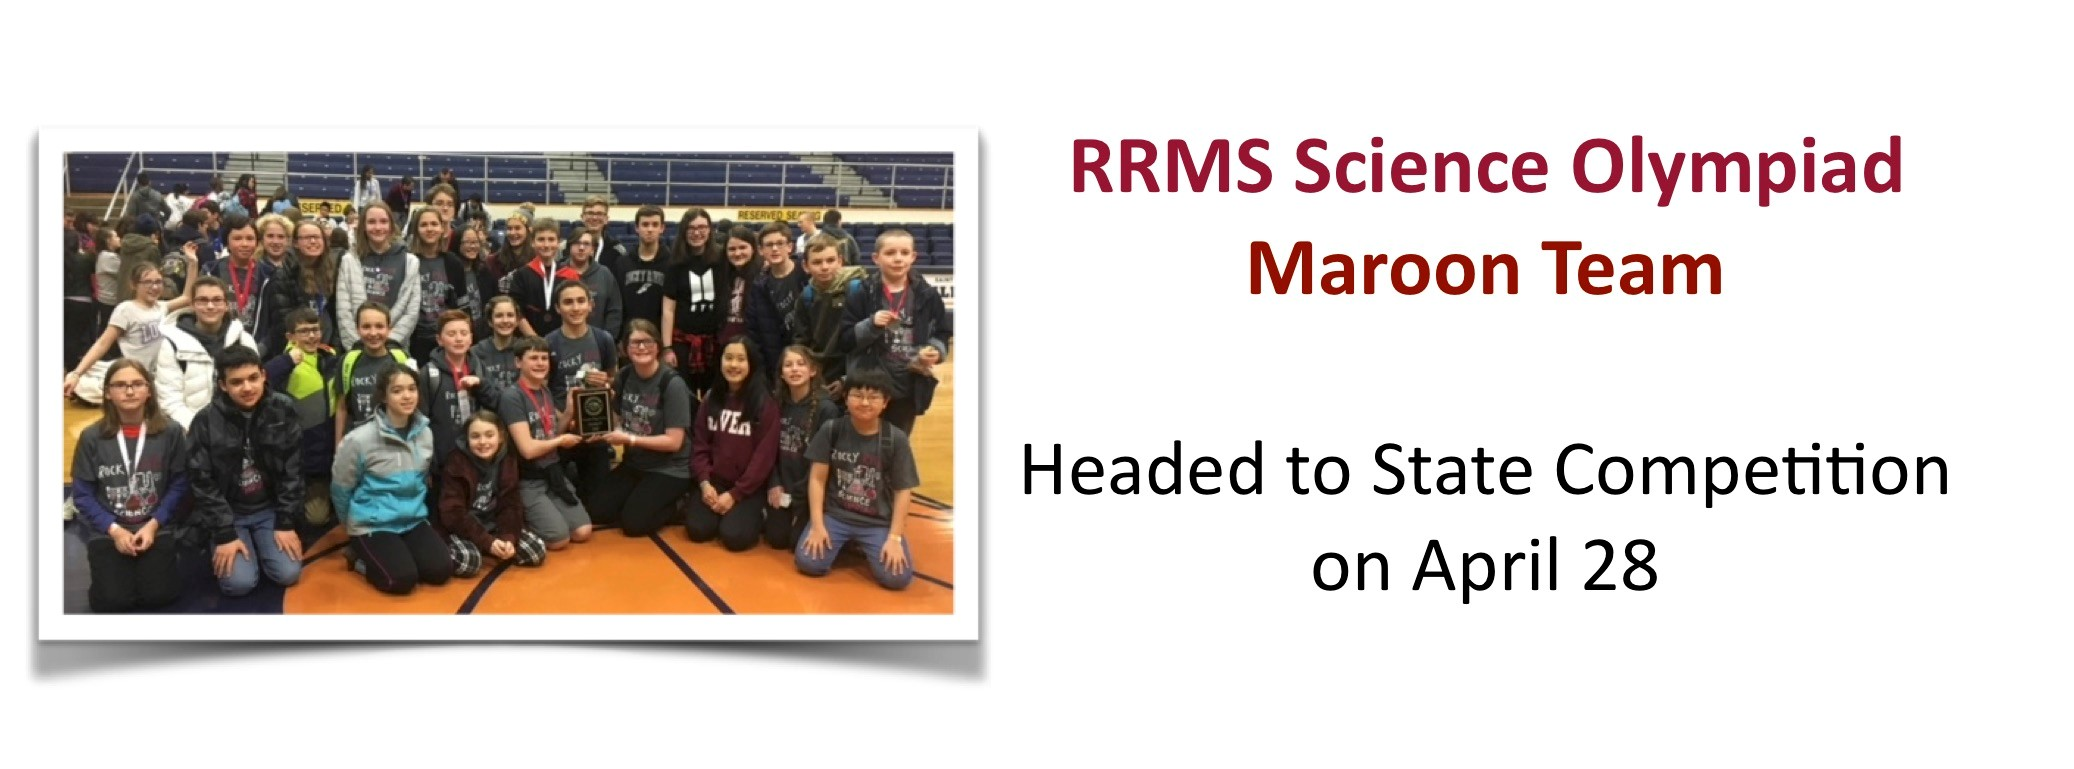 RRMS Science Olympiad Team headed shows off their 4th place plaque.